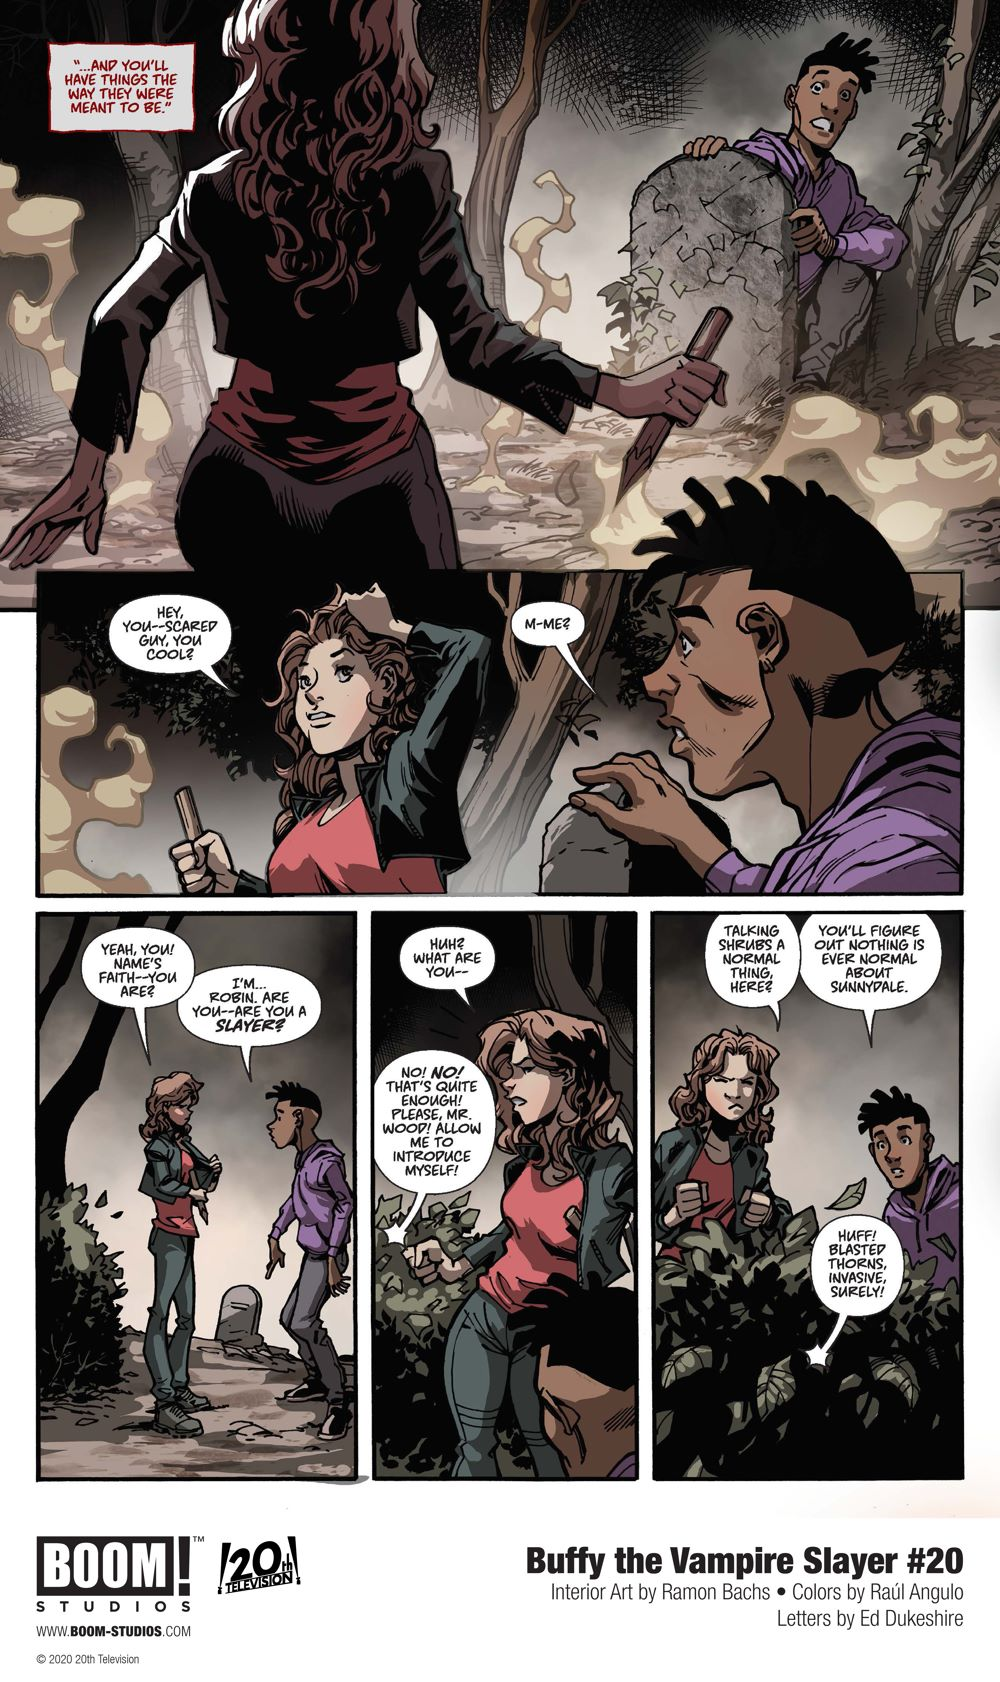 Buffy_020_InteriorArt_005_PROMO First Look at BOOM! Studios' BUFFY THE VAMPIRE SLAYER #20